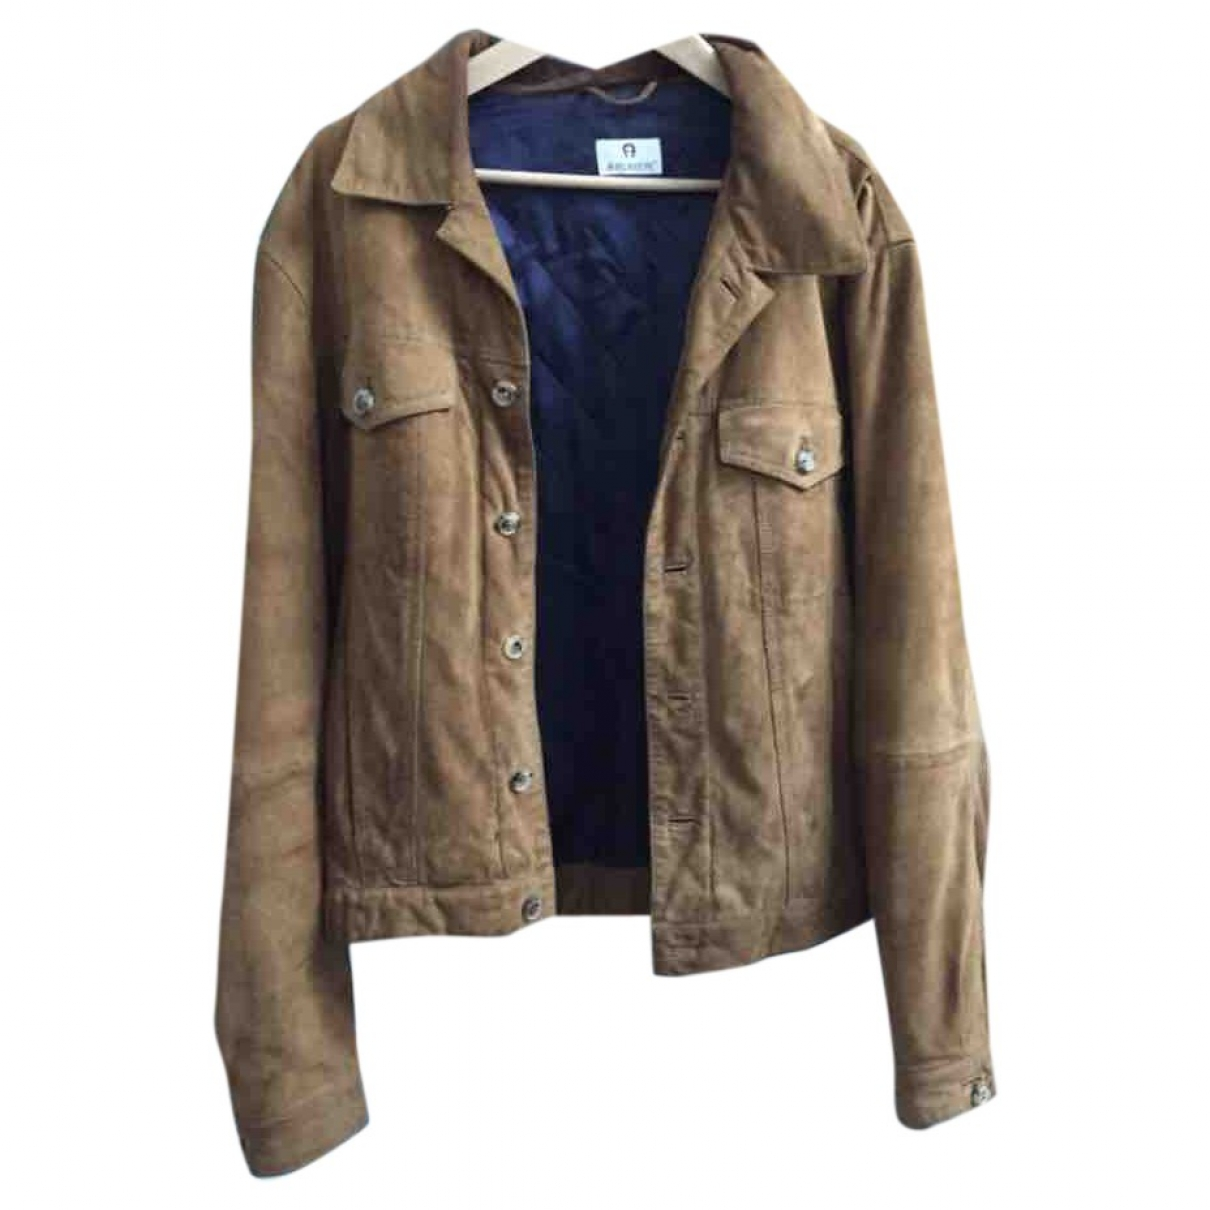 Aigner \N Brown Suede jacket  for Men L International